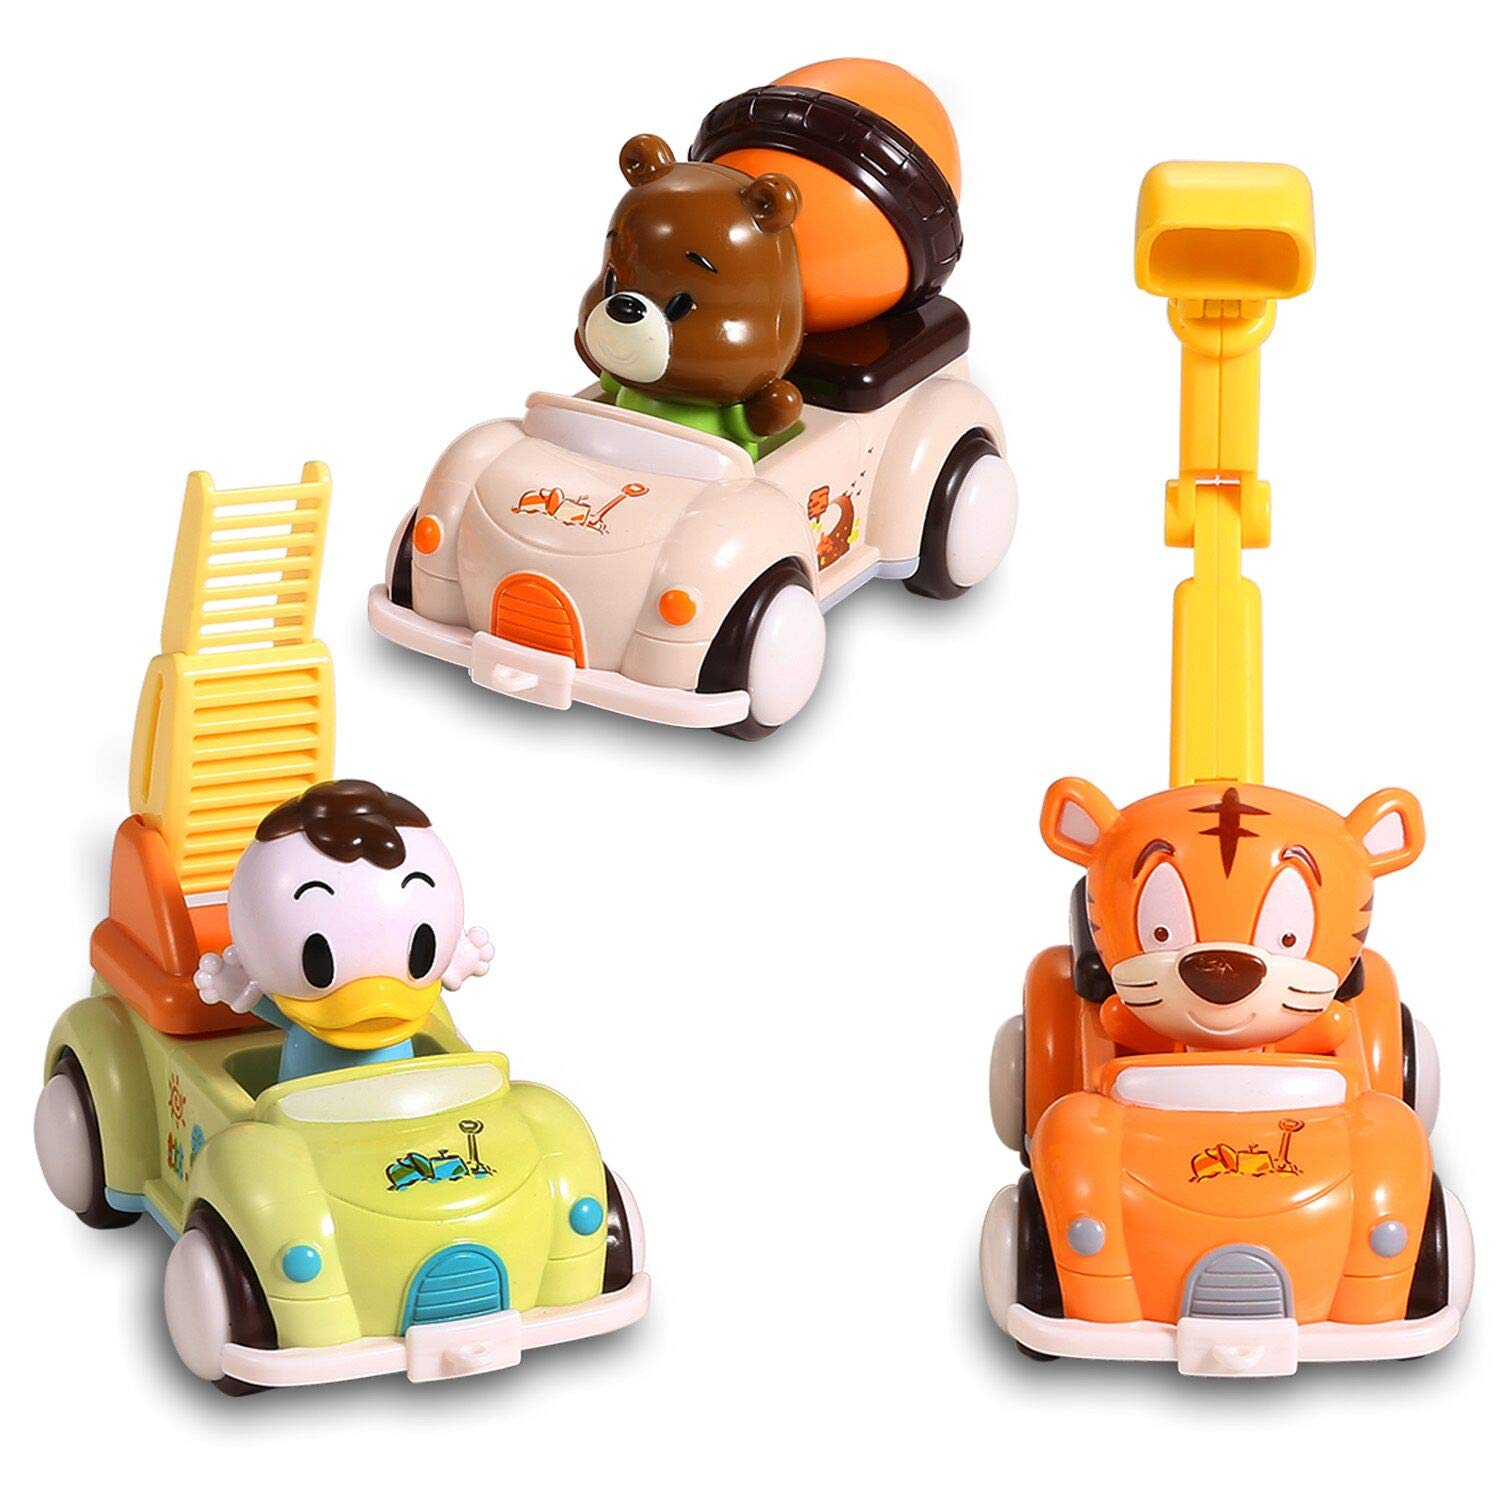 EFOSHM Car Toys for Baby 3 Sets-Friction Powered Cars-Push and Go Cars-Cartoon Cars Toys for Kids, Toddler Toy Cars for 1, 2, 3, 4, 5, 6 Years Old